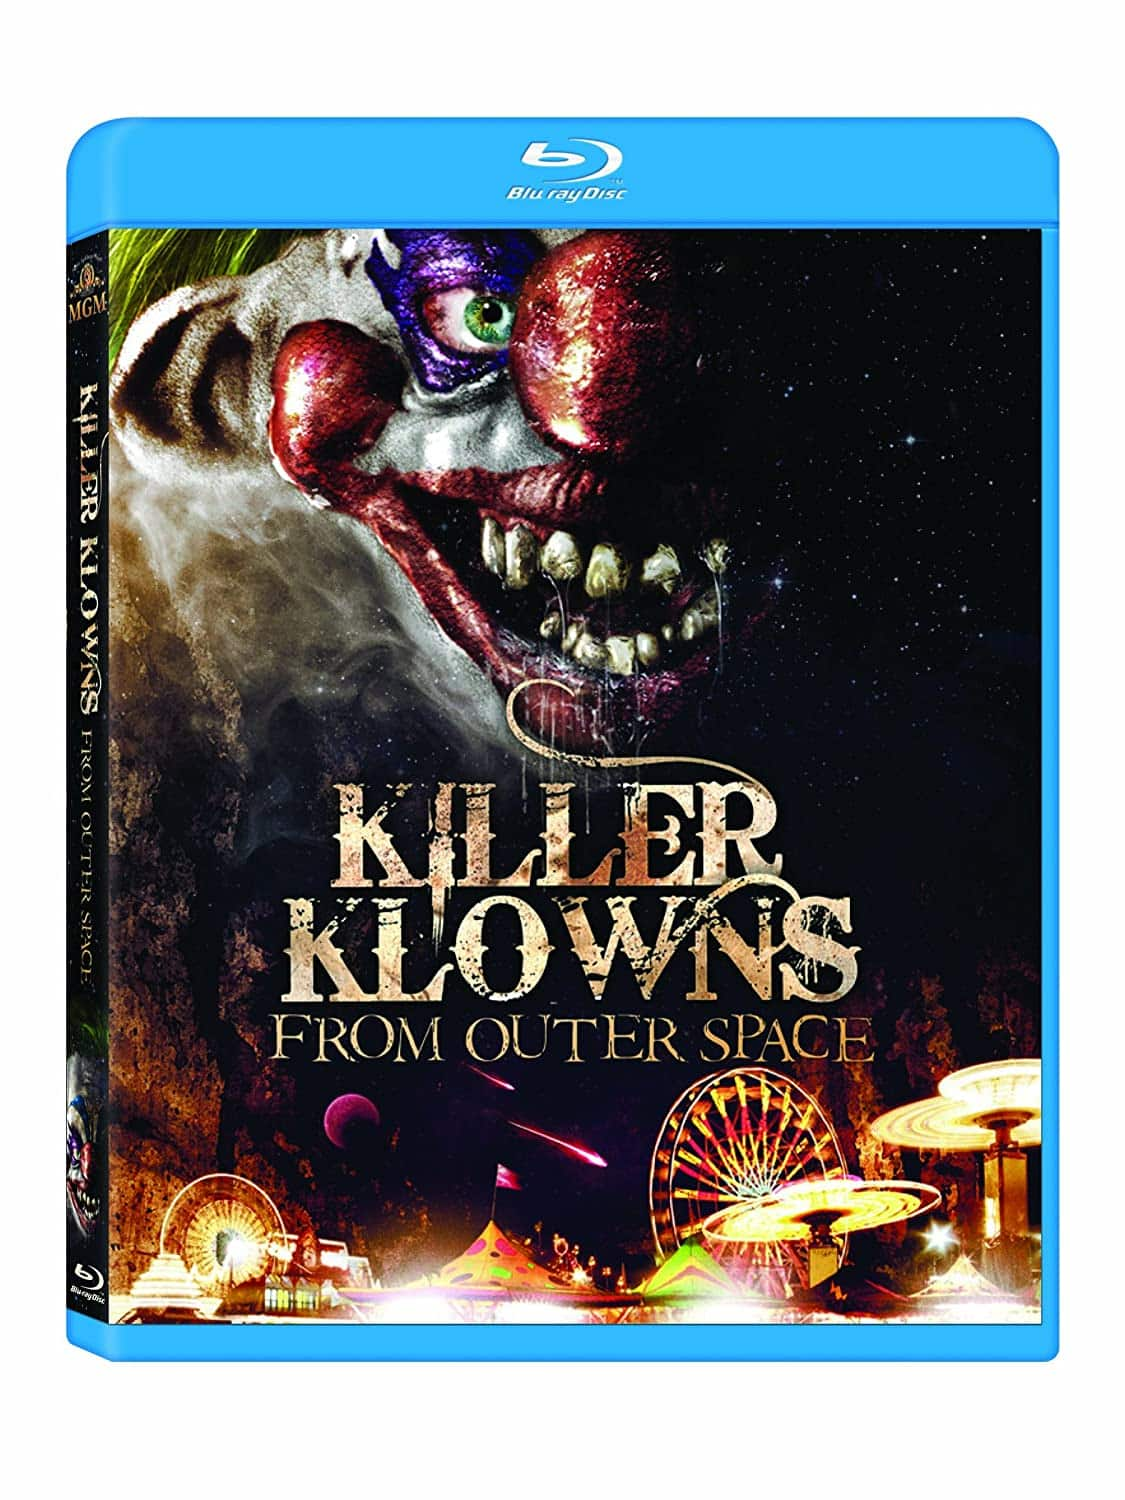 Killer Klowns from Outer Space (Blu-ray) $7 @ Amazon/Walmart